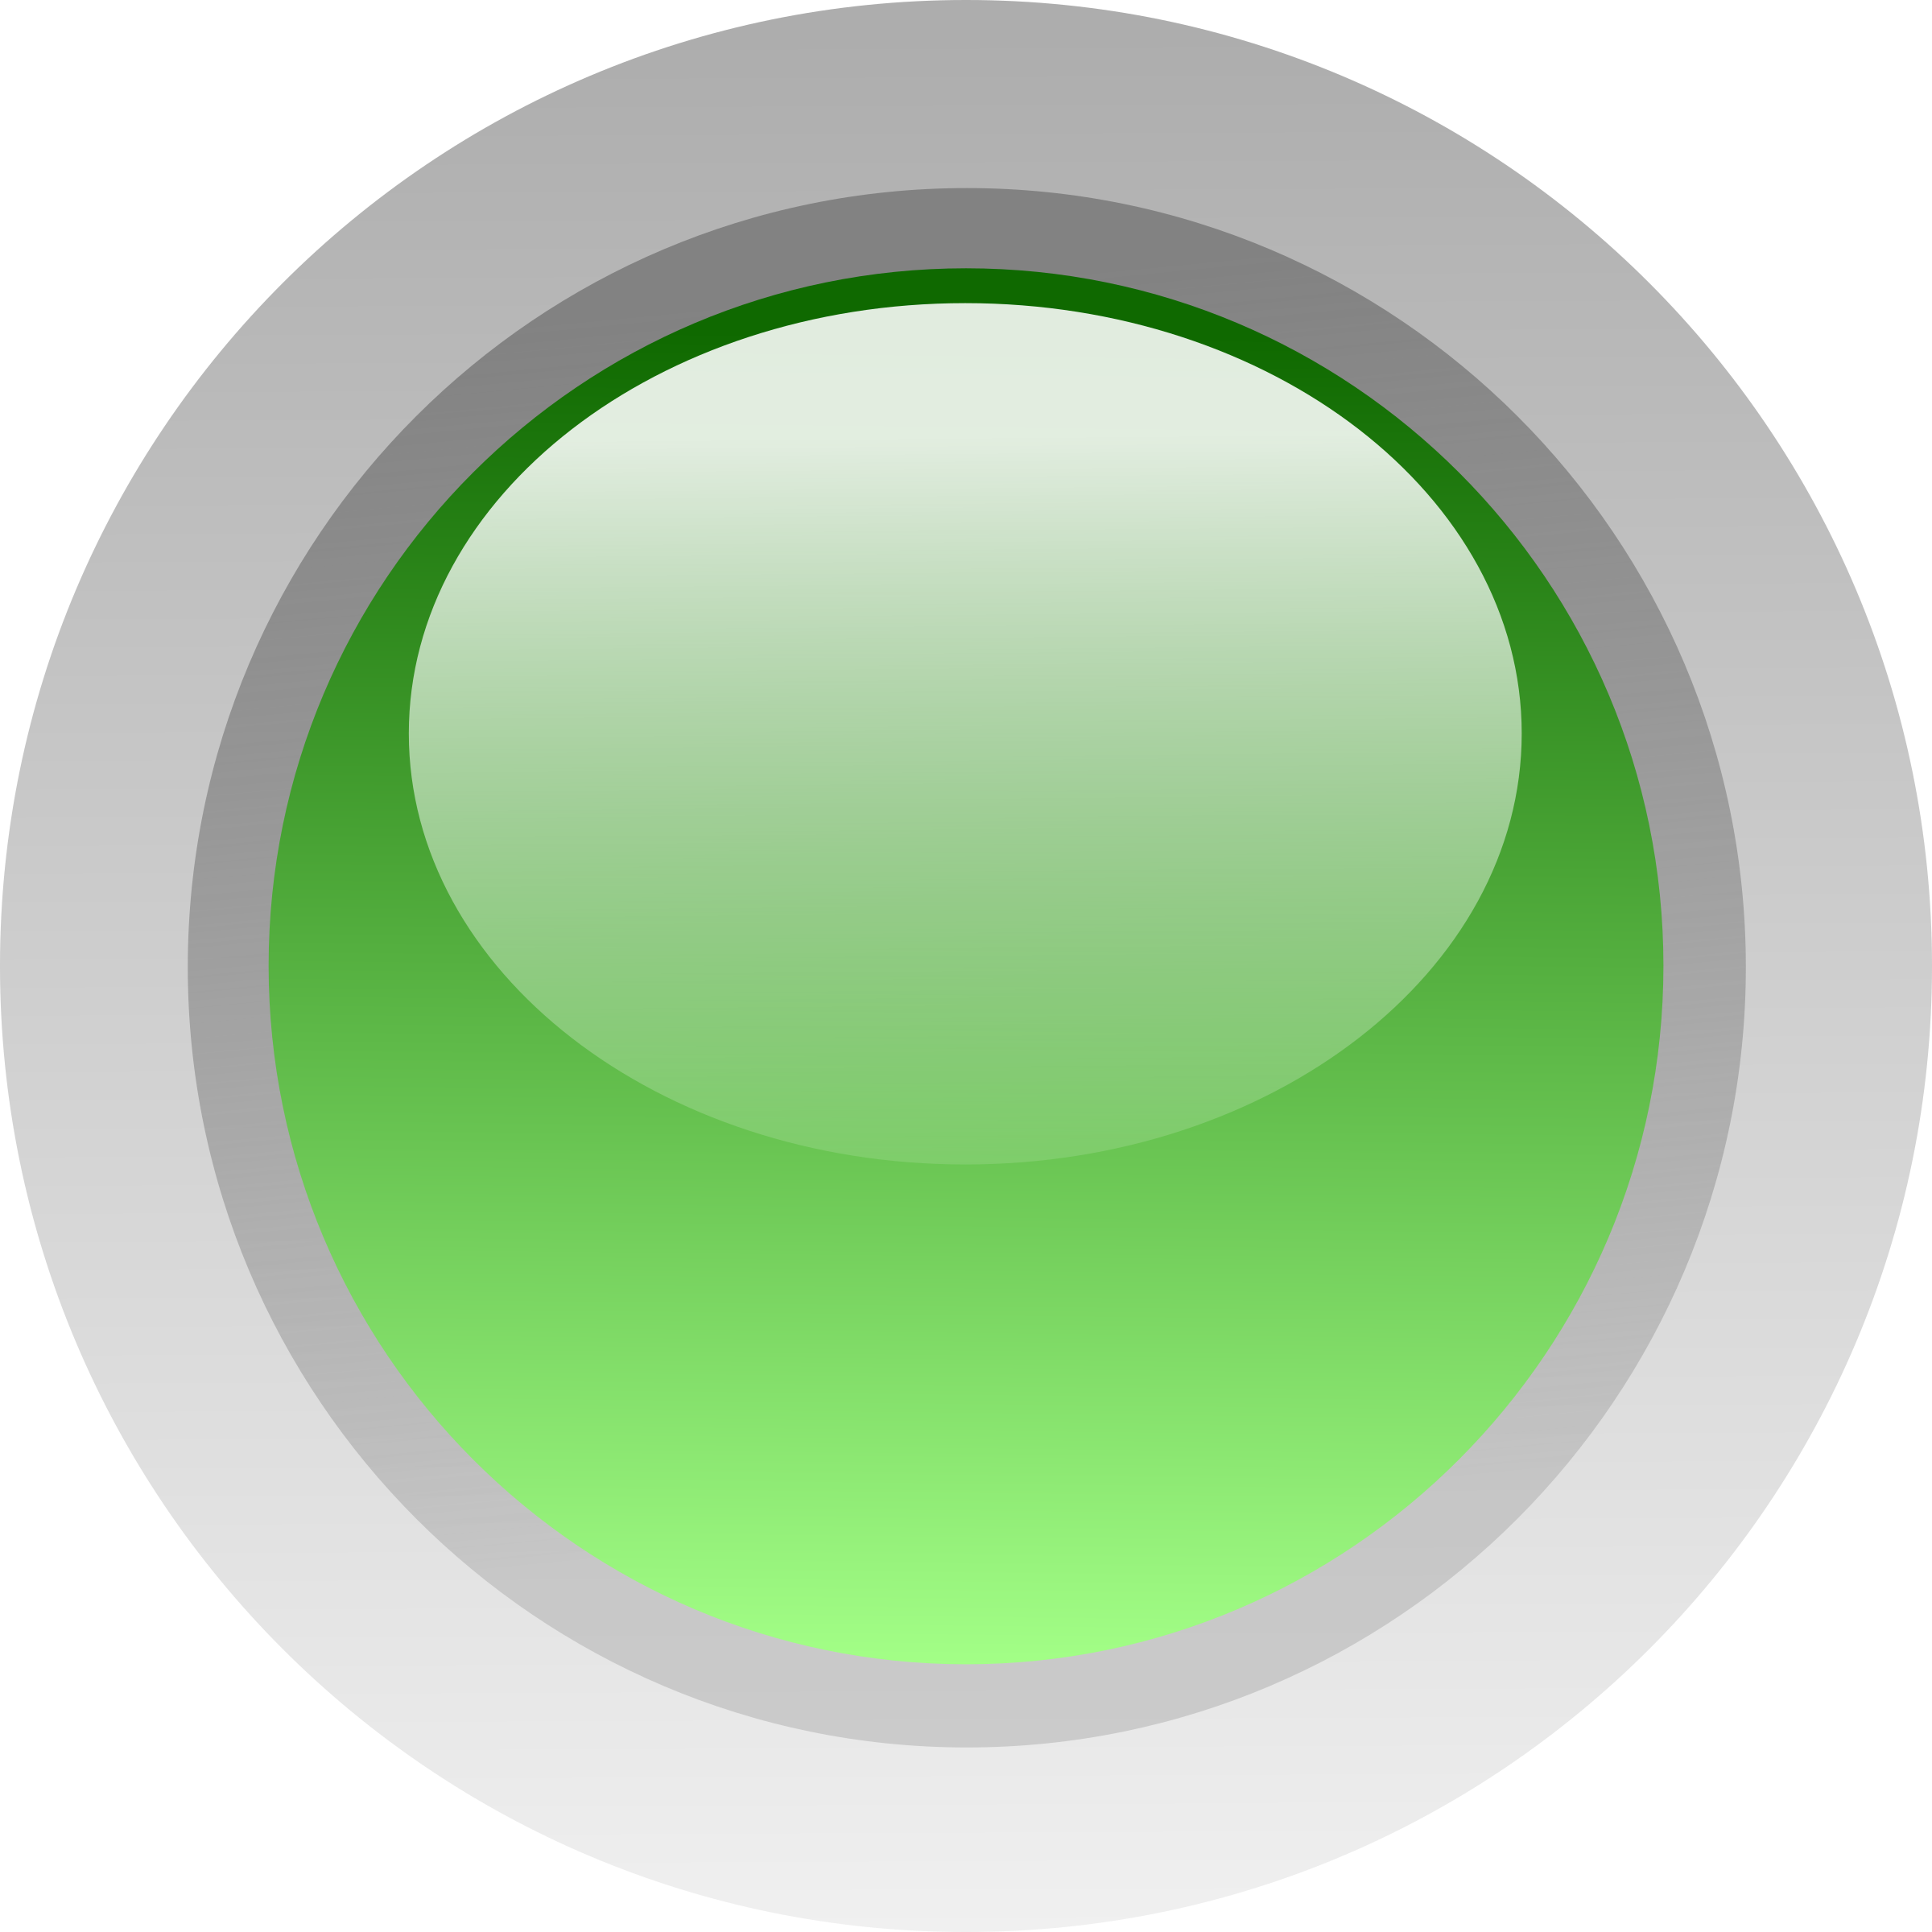 led circle green by jean_victor_balin